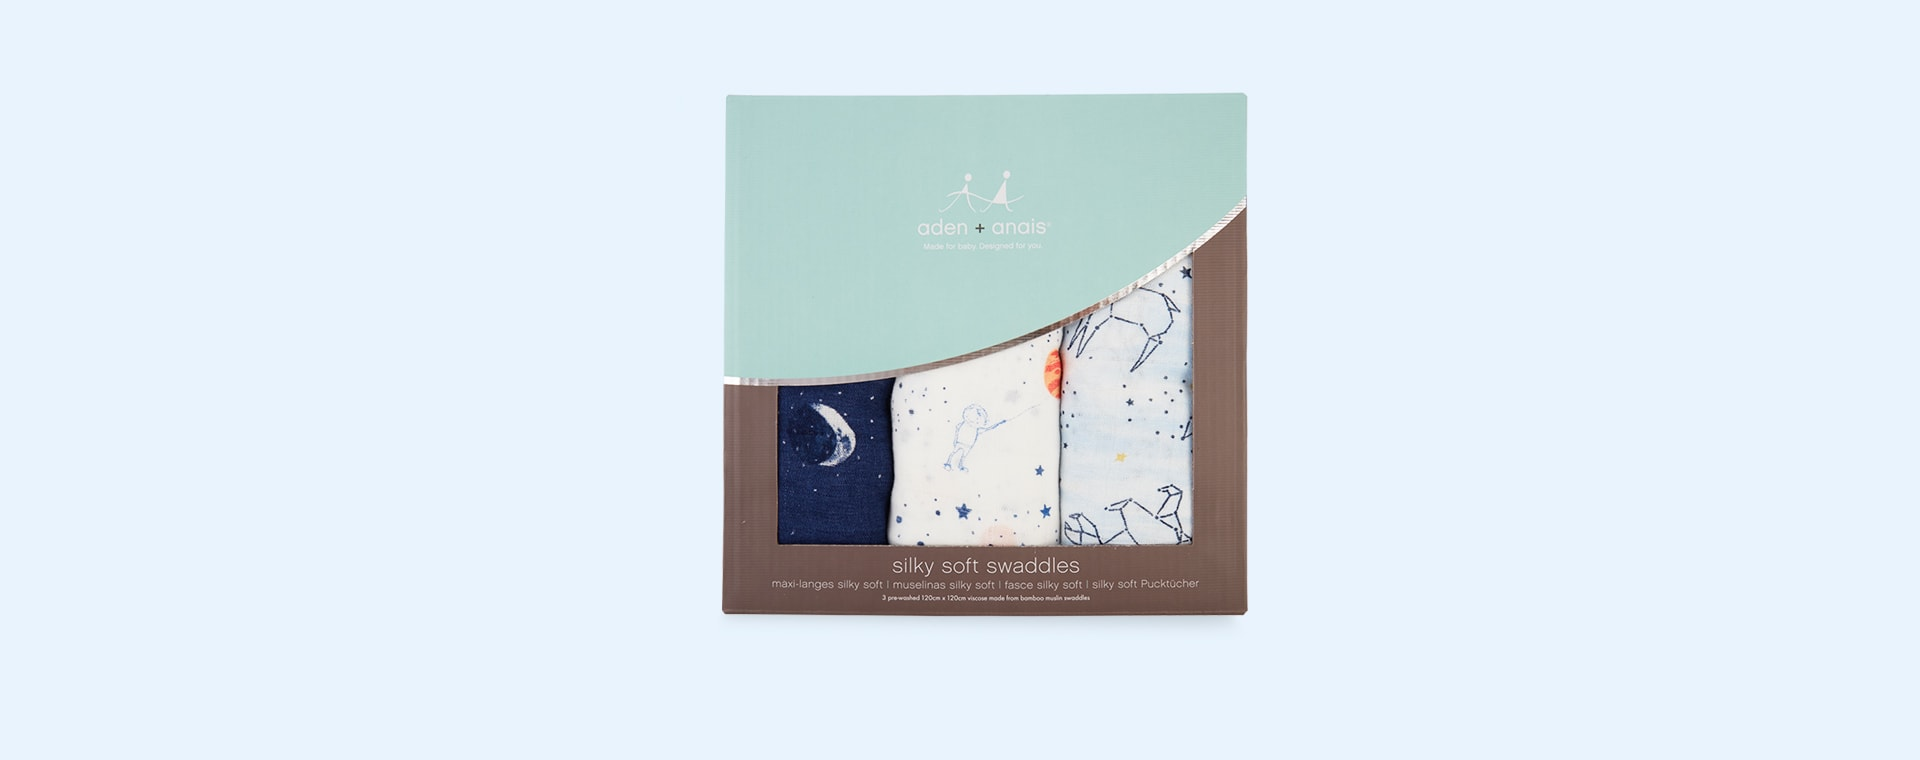 Stargaze aden + anais Silky Soft Swaddle - 3 Pack